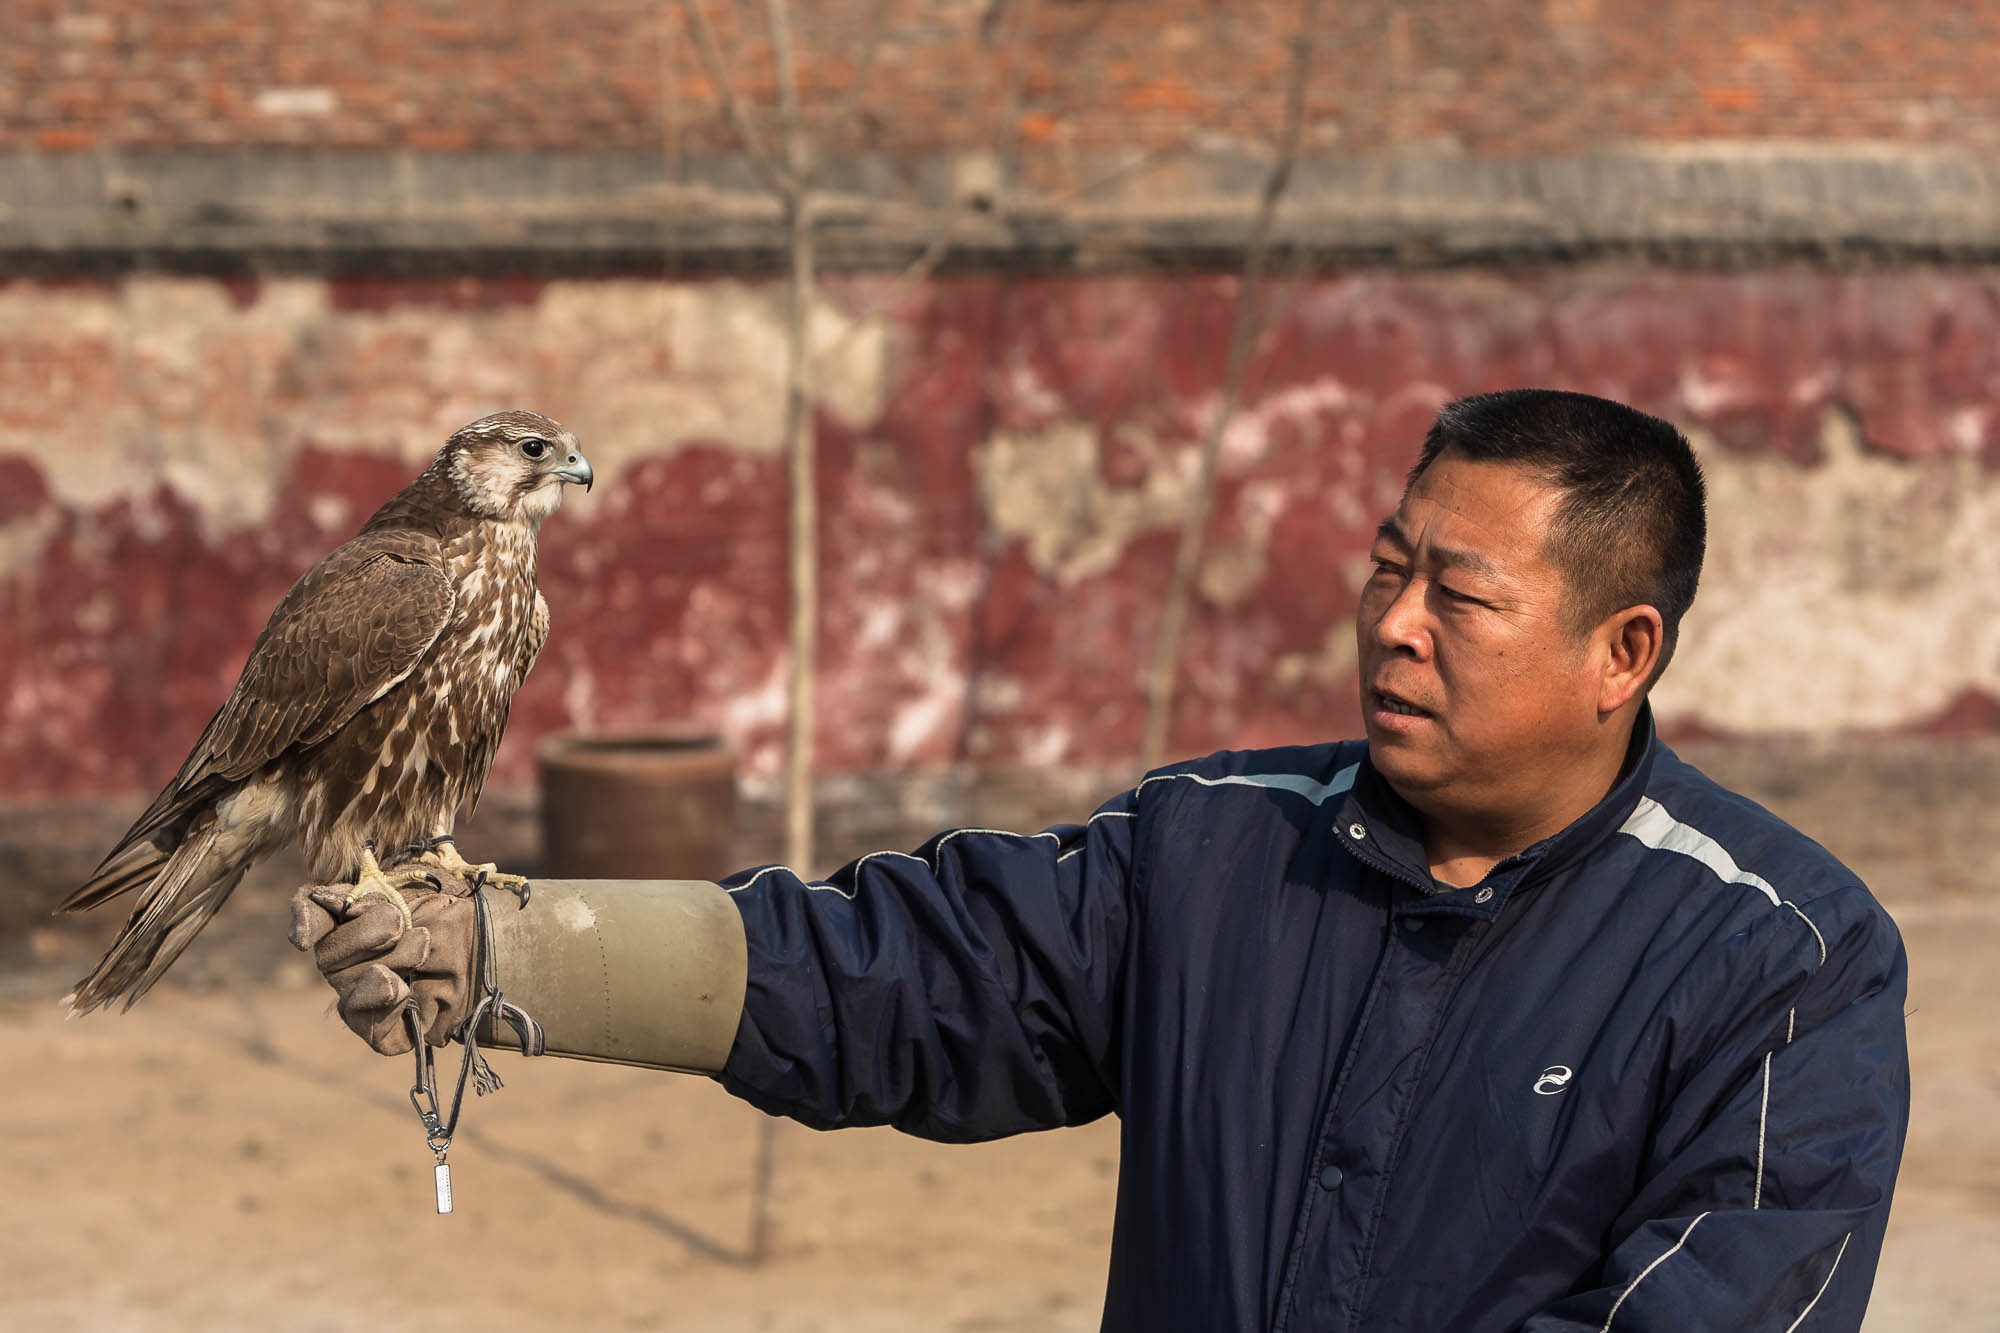 gentleman with falcon